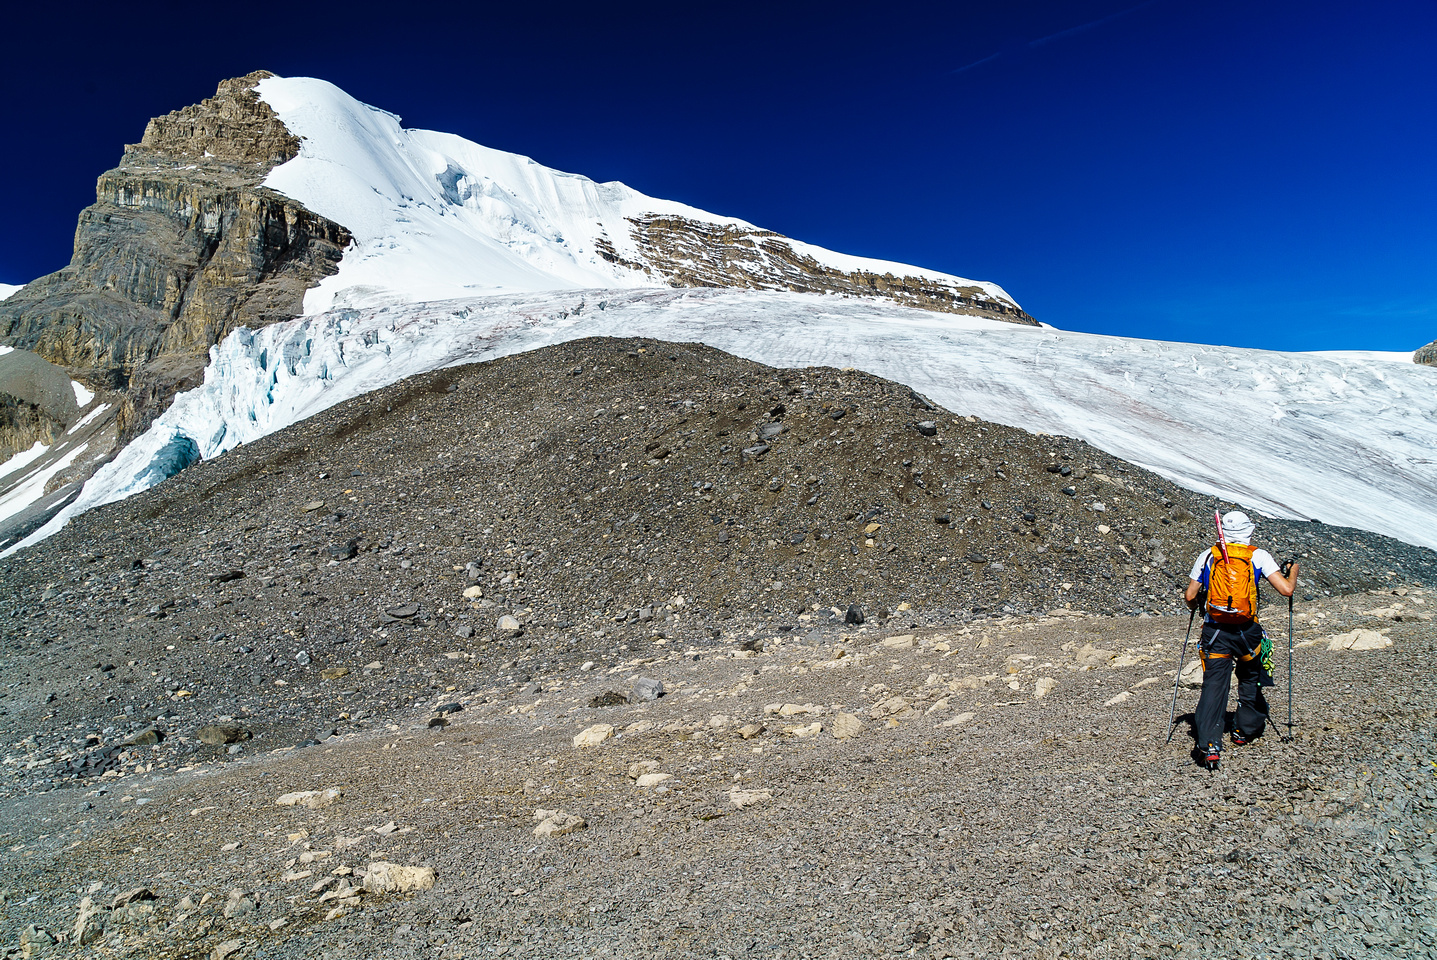 Near the top of the scree access to the glacial bench with Mount Warren looming above us.